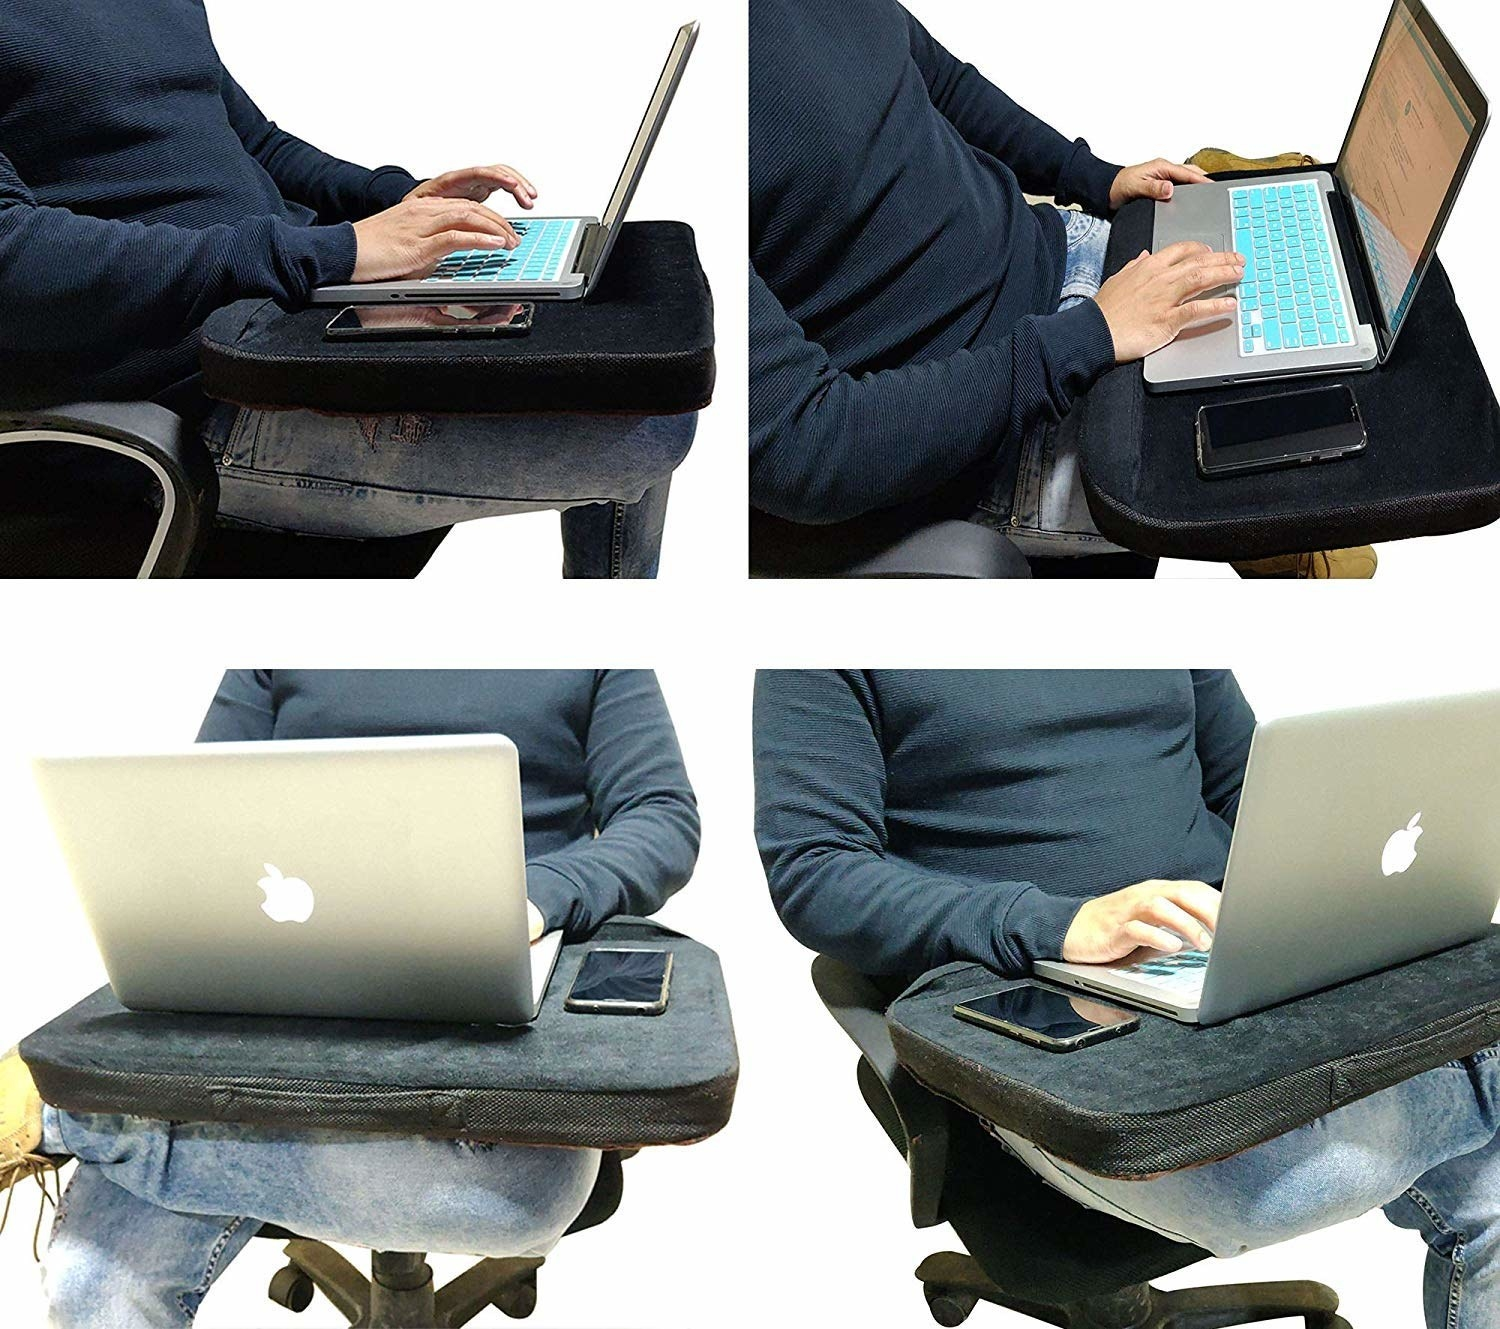 Various angles of a person working on their laptop, kept on their lapdesk.